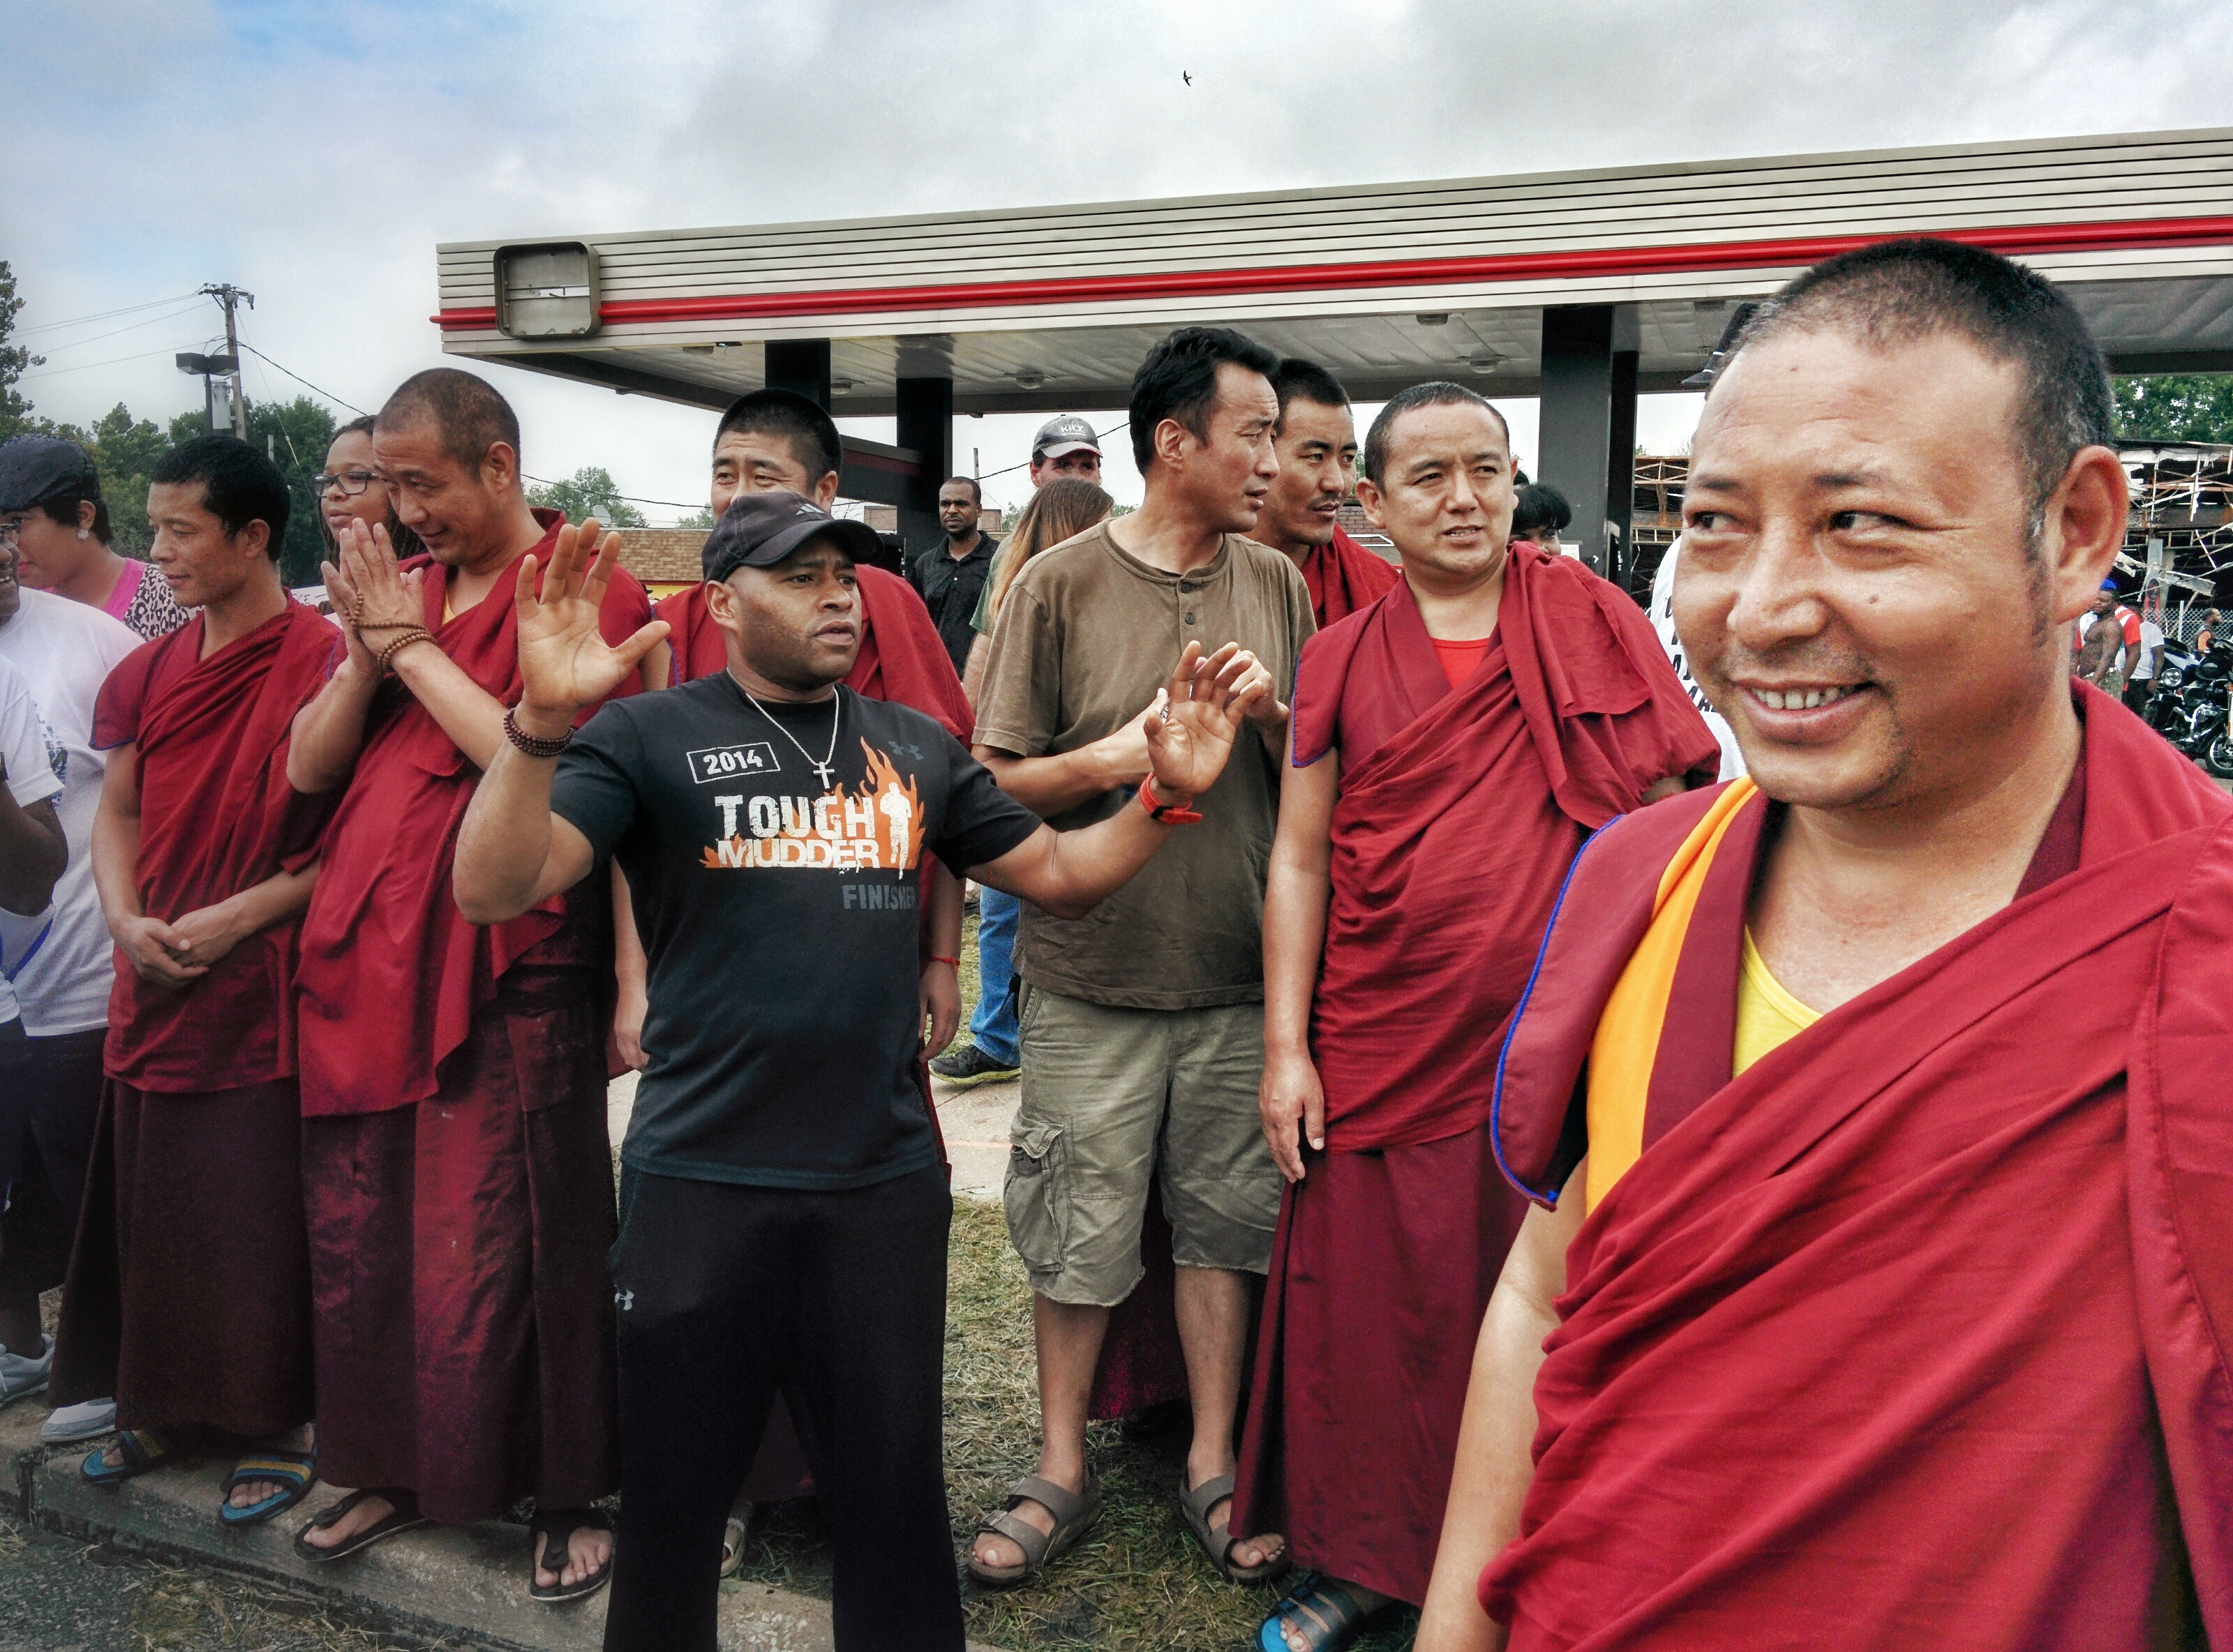 Tibetan Monks at Ferguson peaceful protest